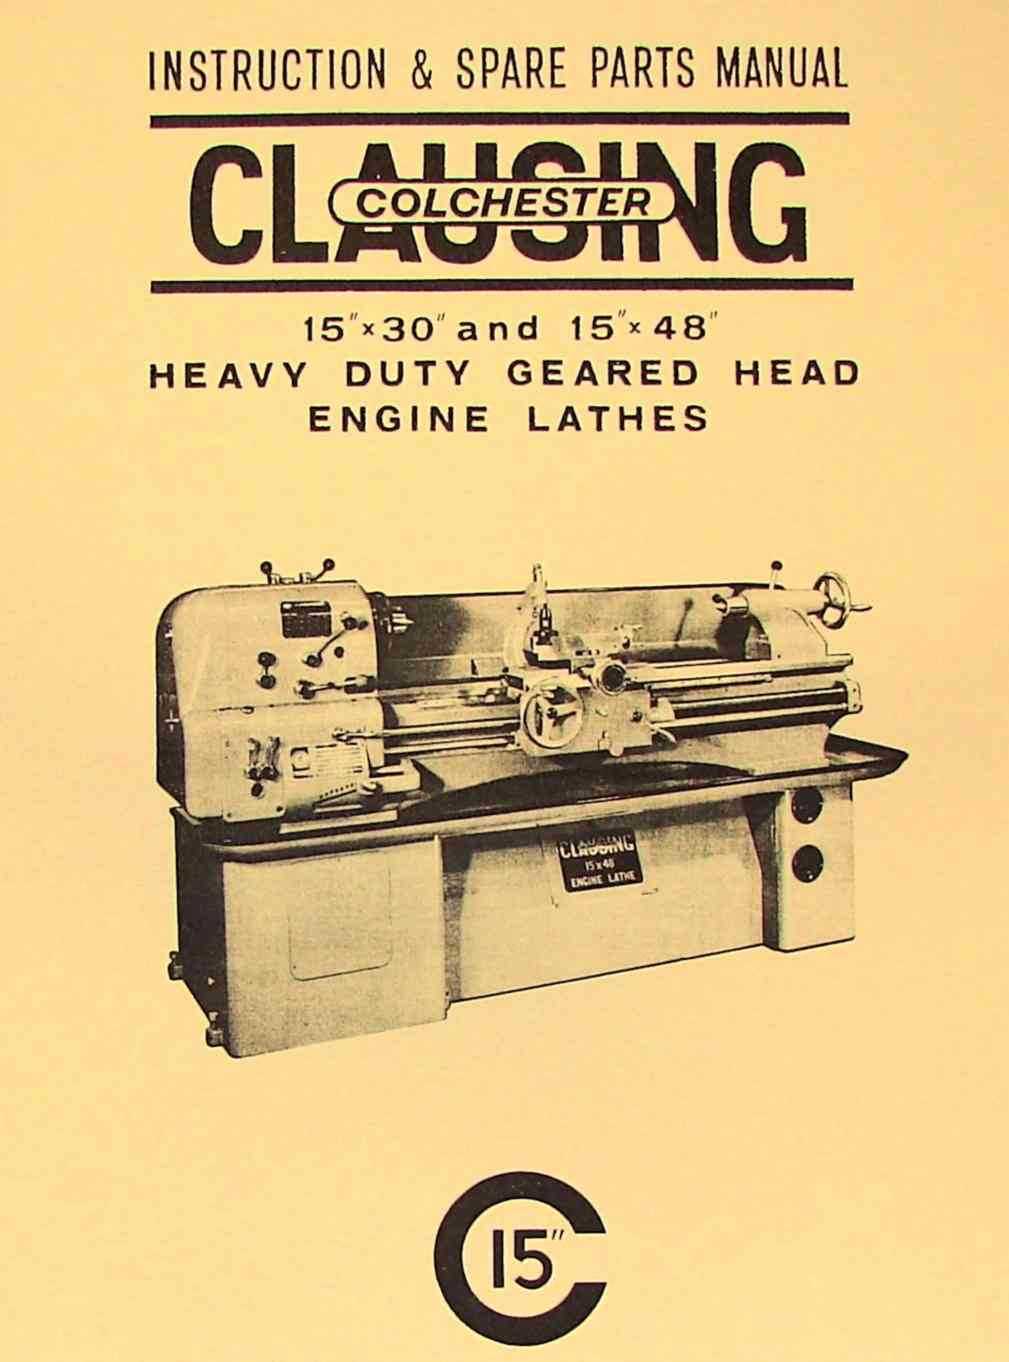 hight resolution of clausing colchester 15 x30 15 x48 metal lathe instruction part manual ozark tool manuals books